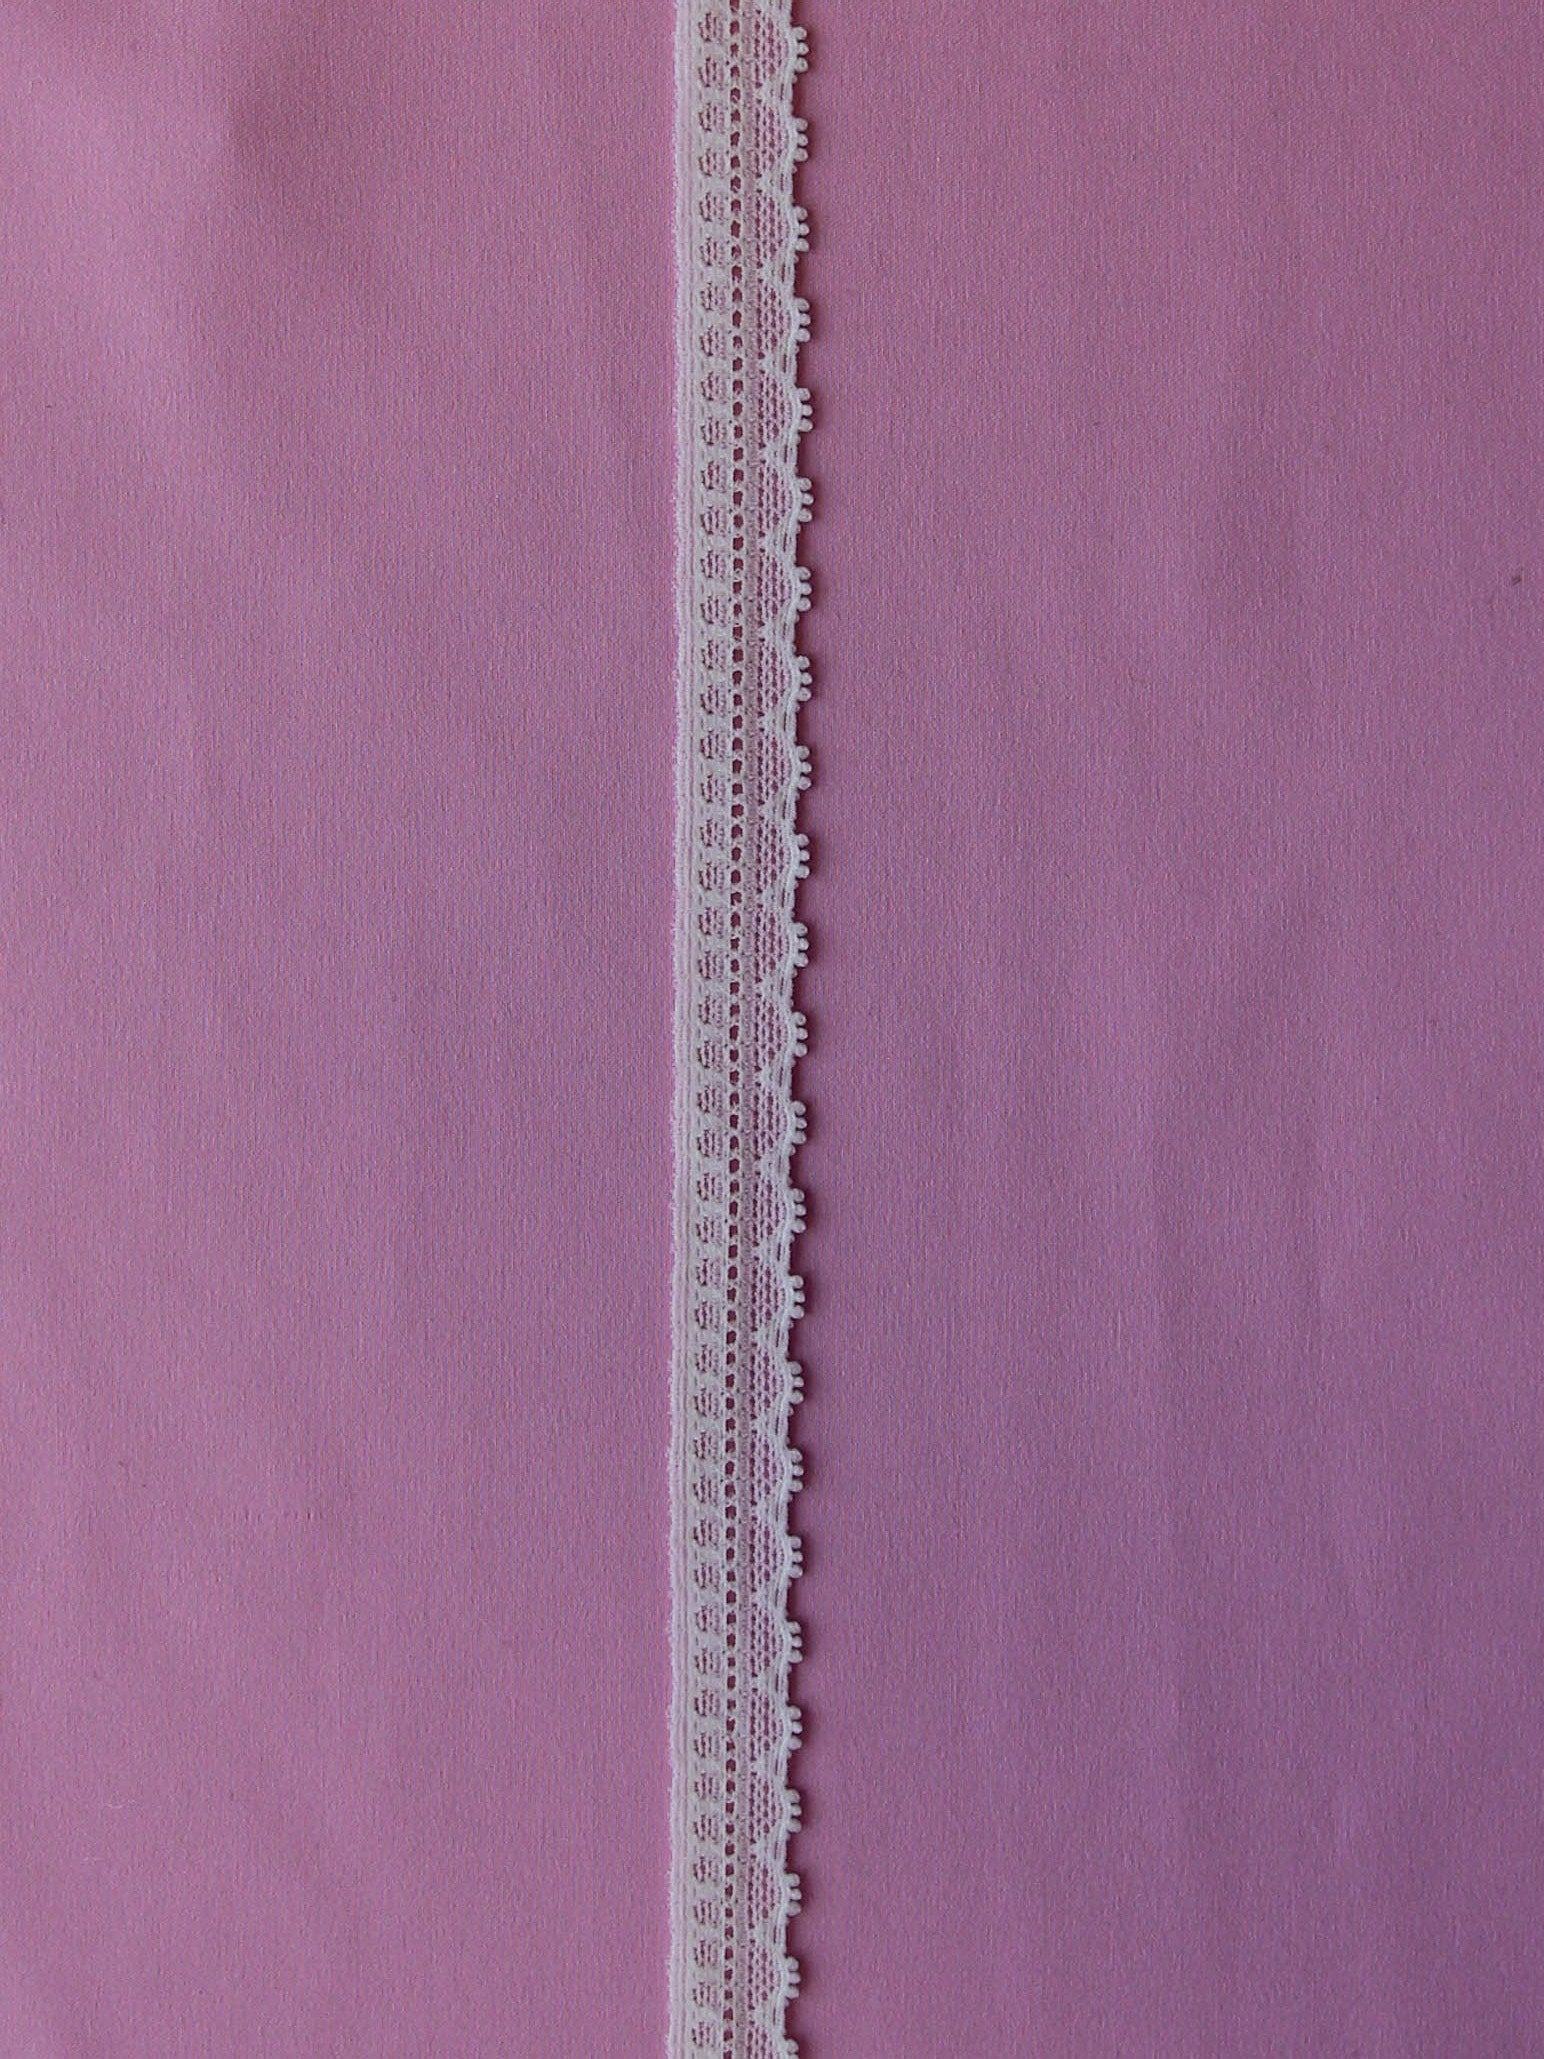 Ivory Lace Trim - Maple